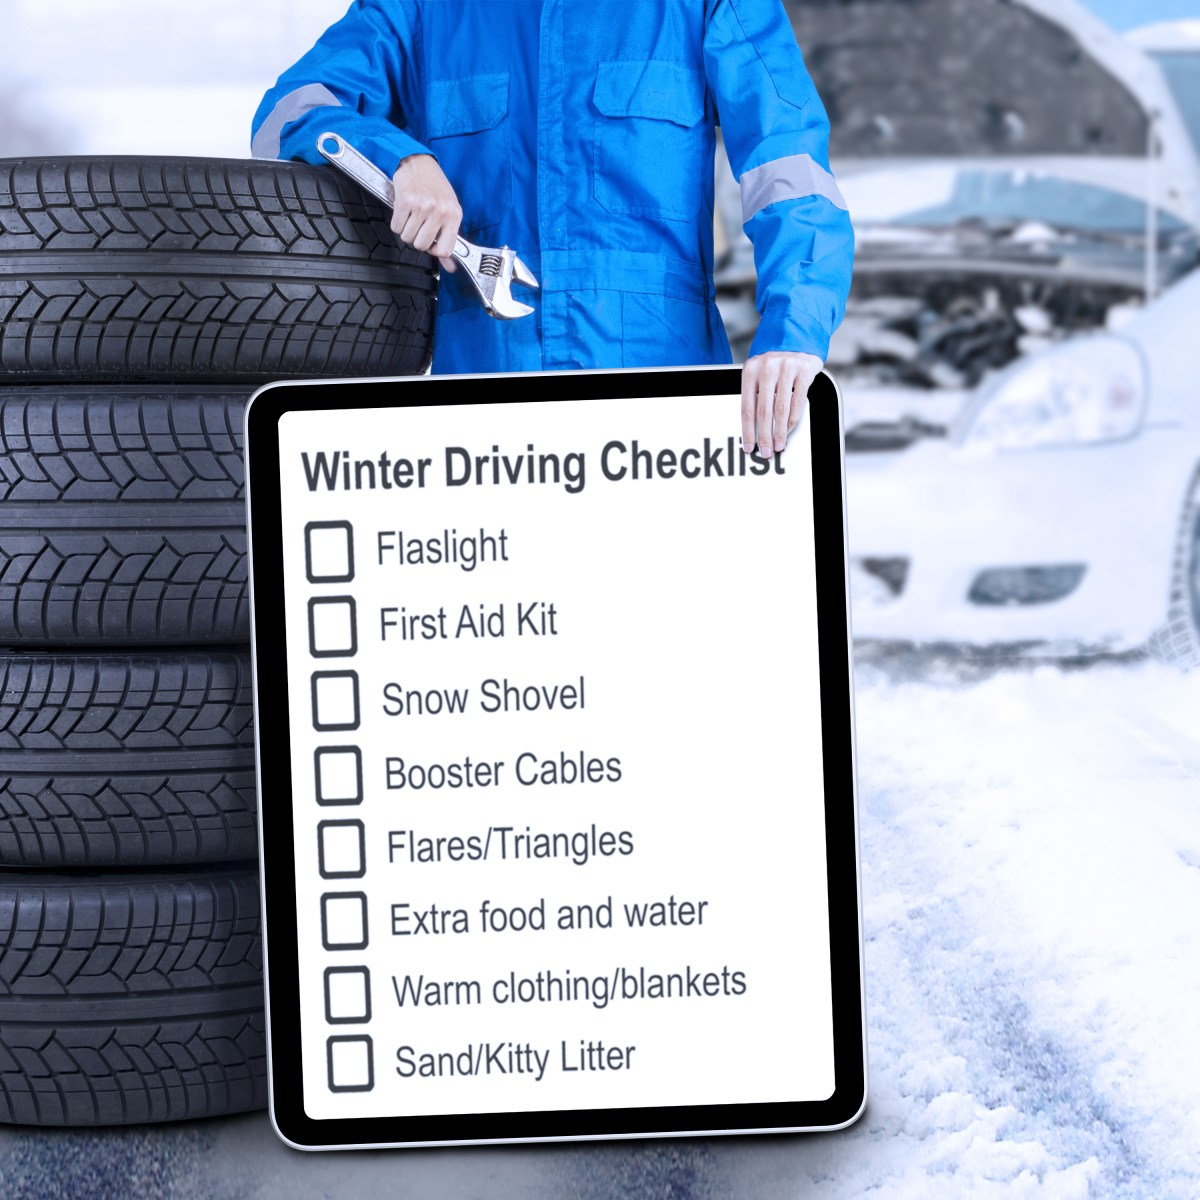 Is Your Car Ready for Winter Driving?